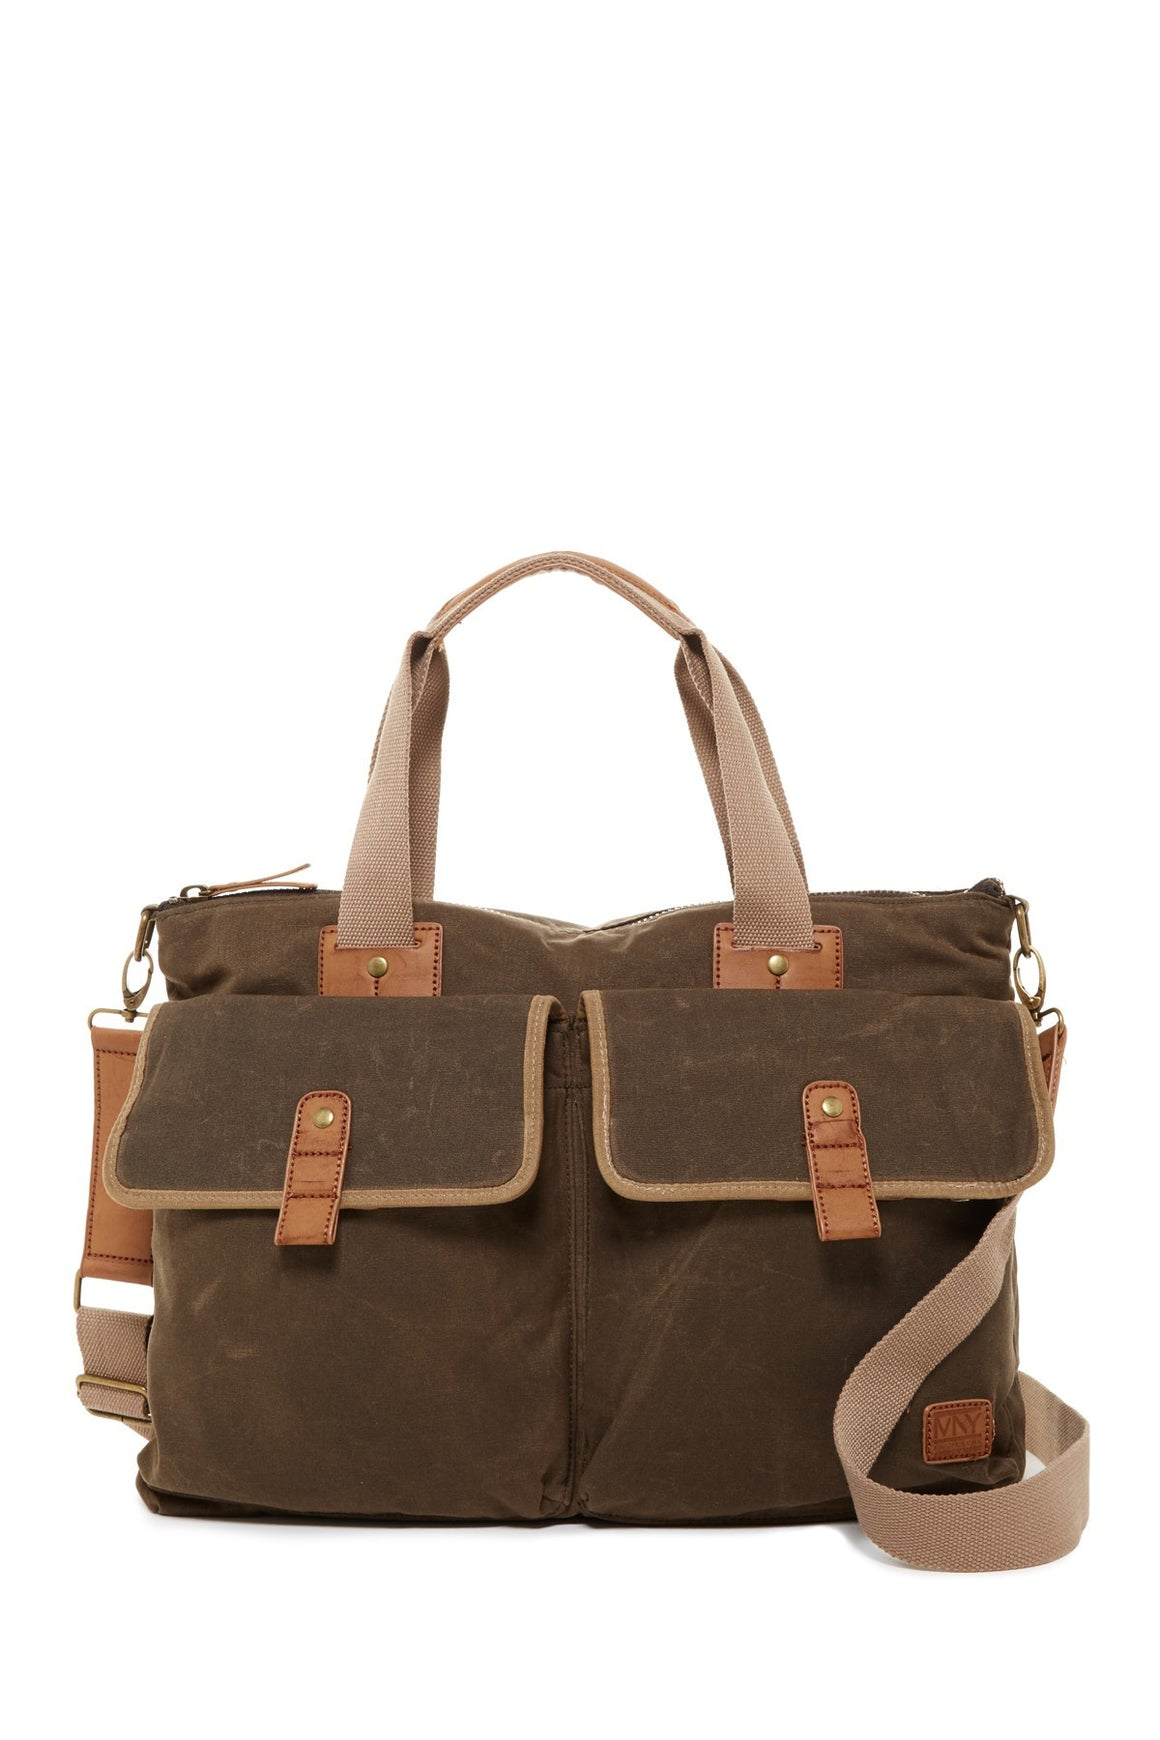 Andrew Marc NY Fairfield Canvas & Leather Brief Bag Olive